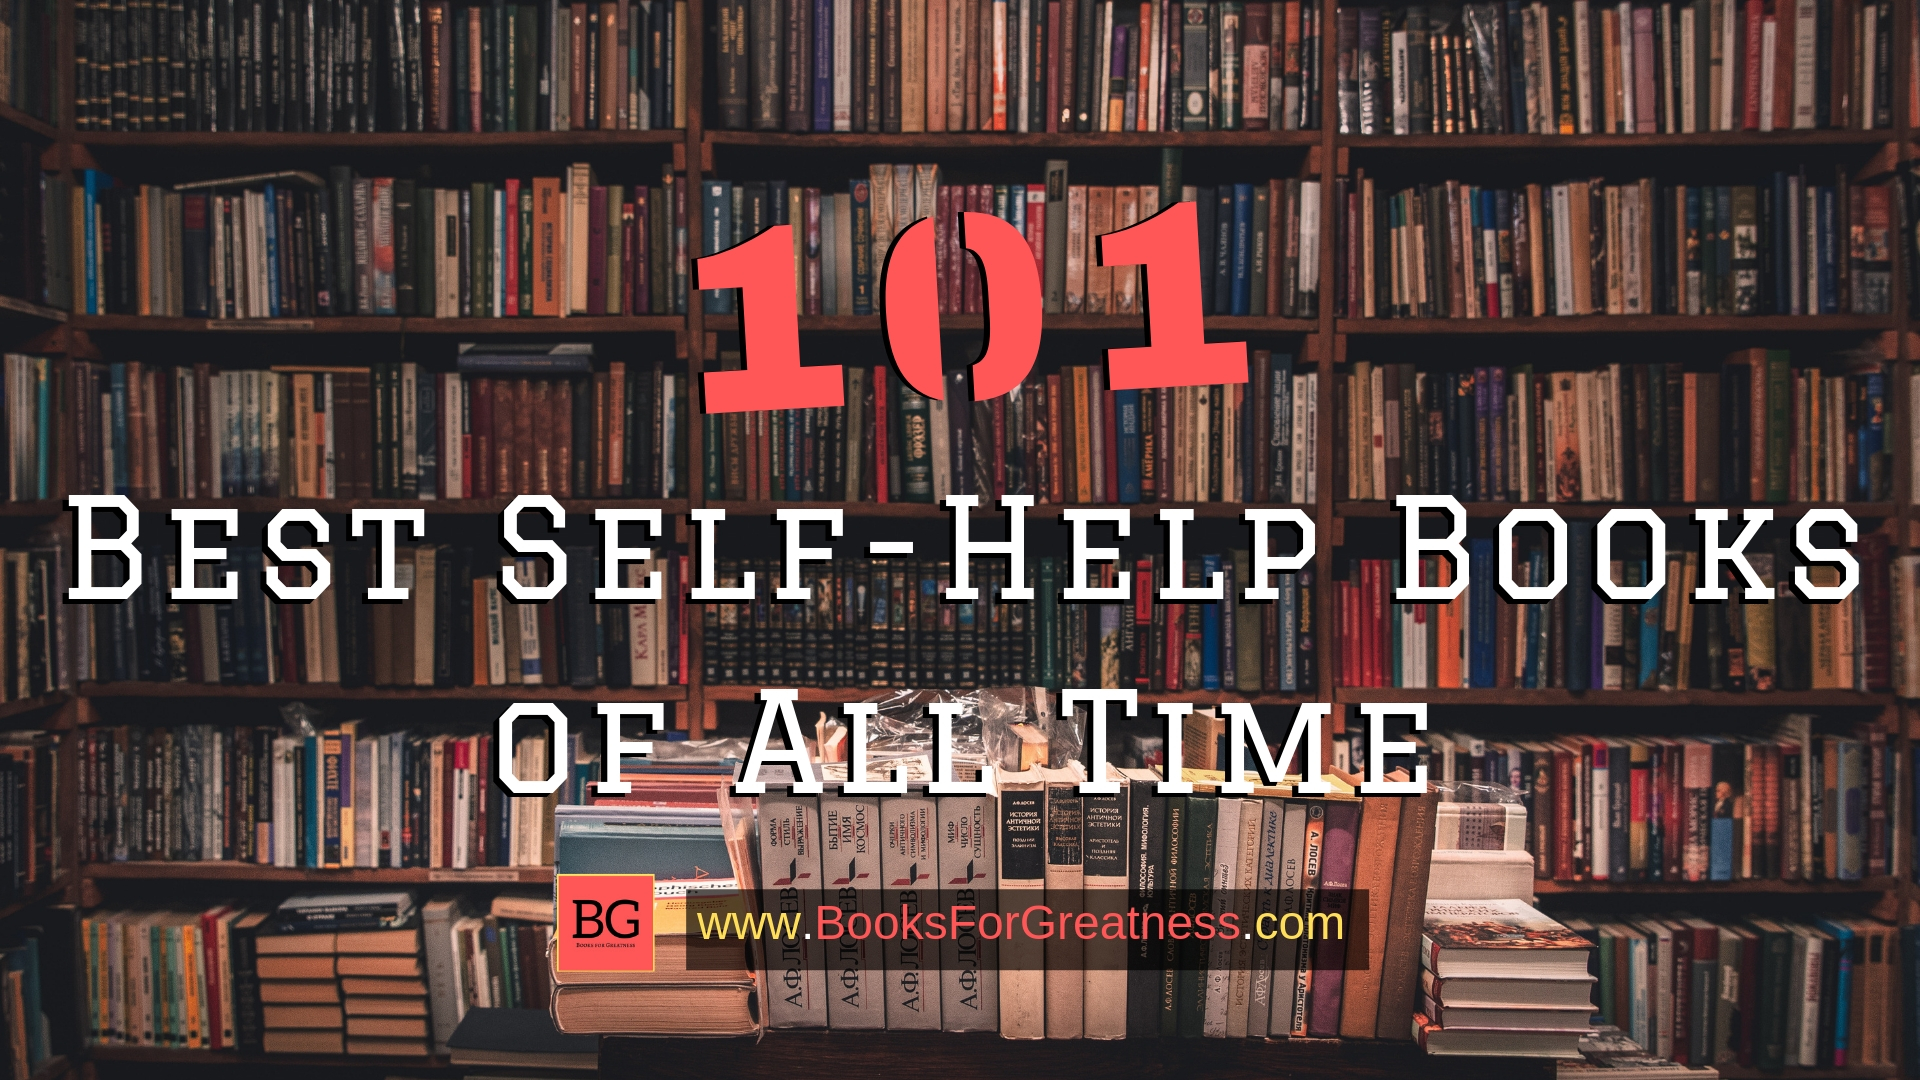 Best Self-Help Books of All Time